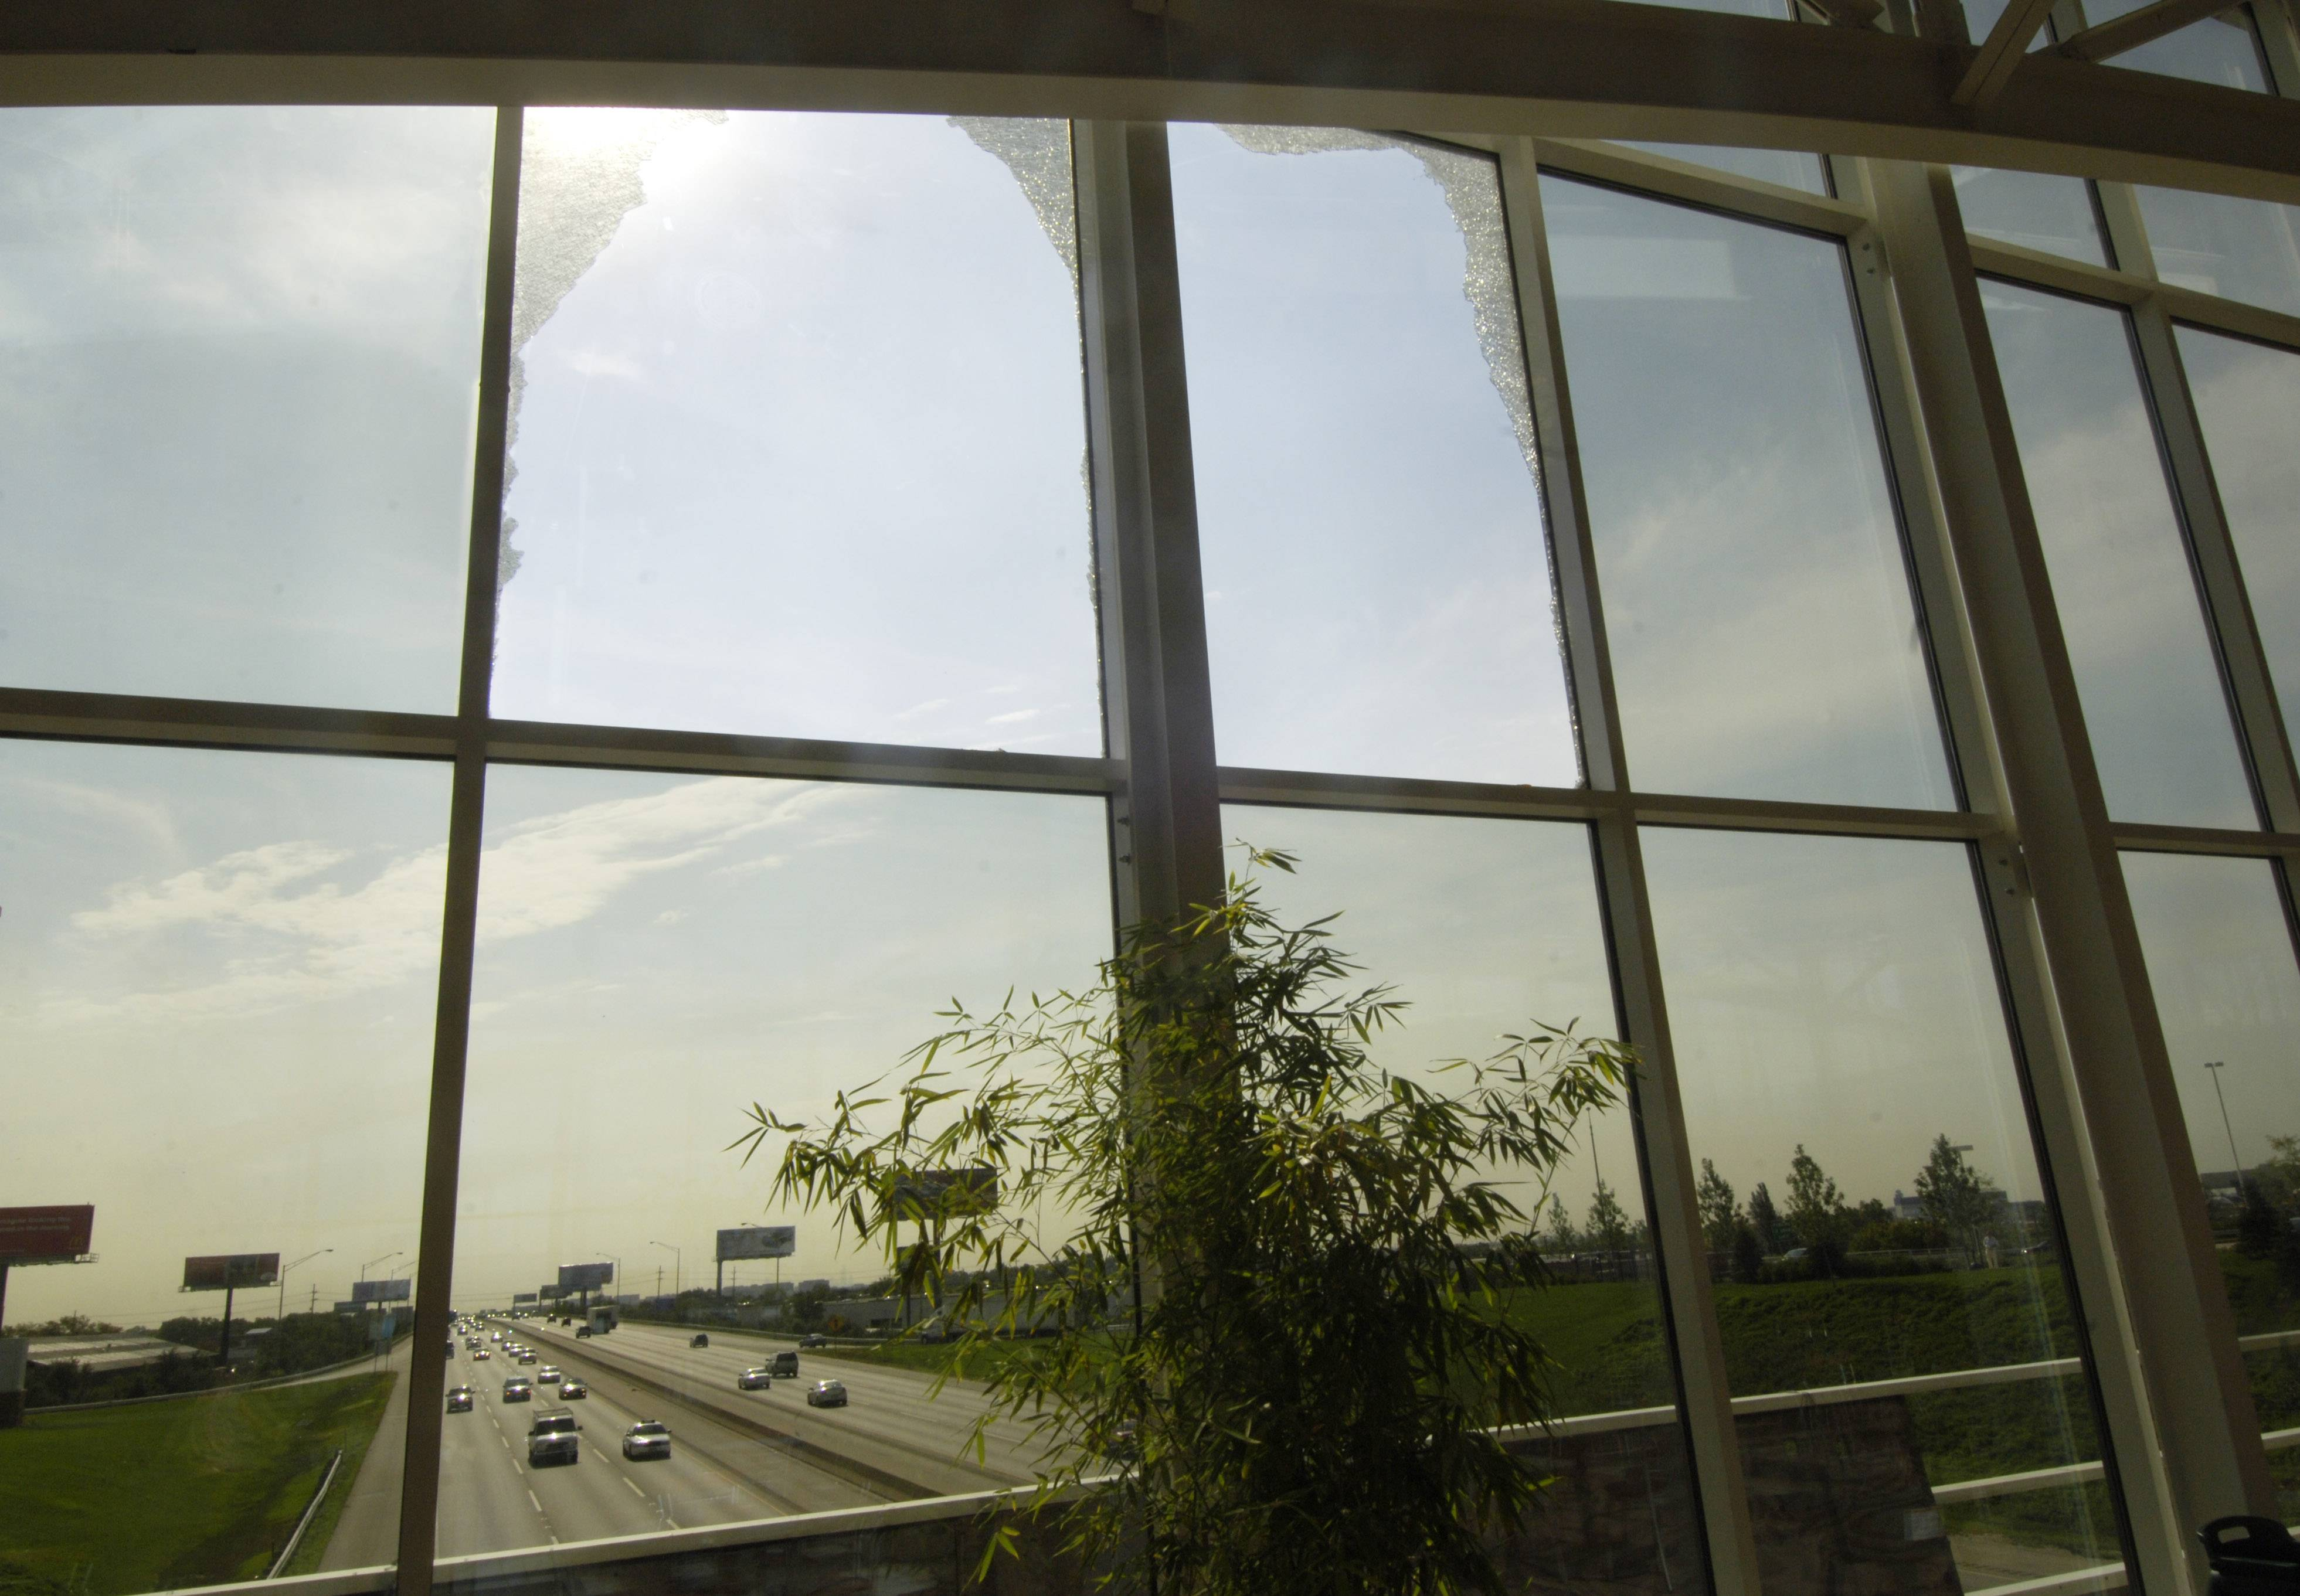 Broken windows at Des Plaines tollway oasis.